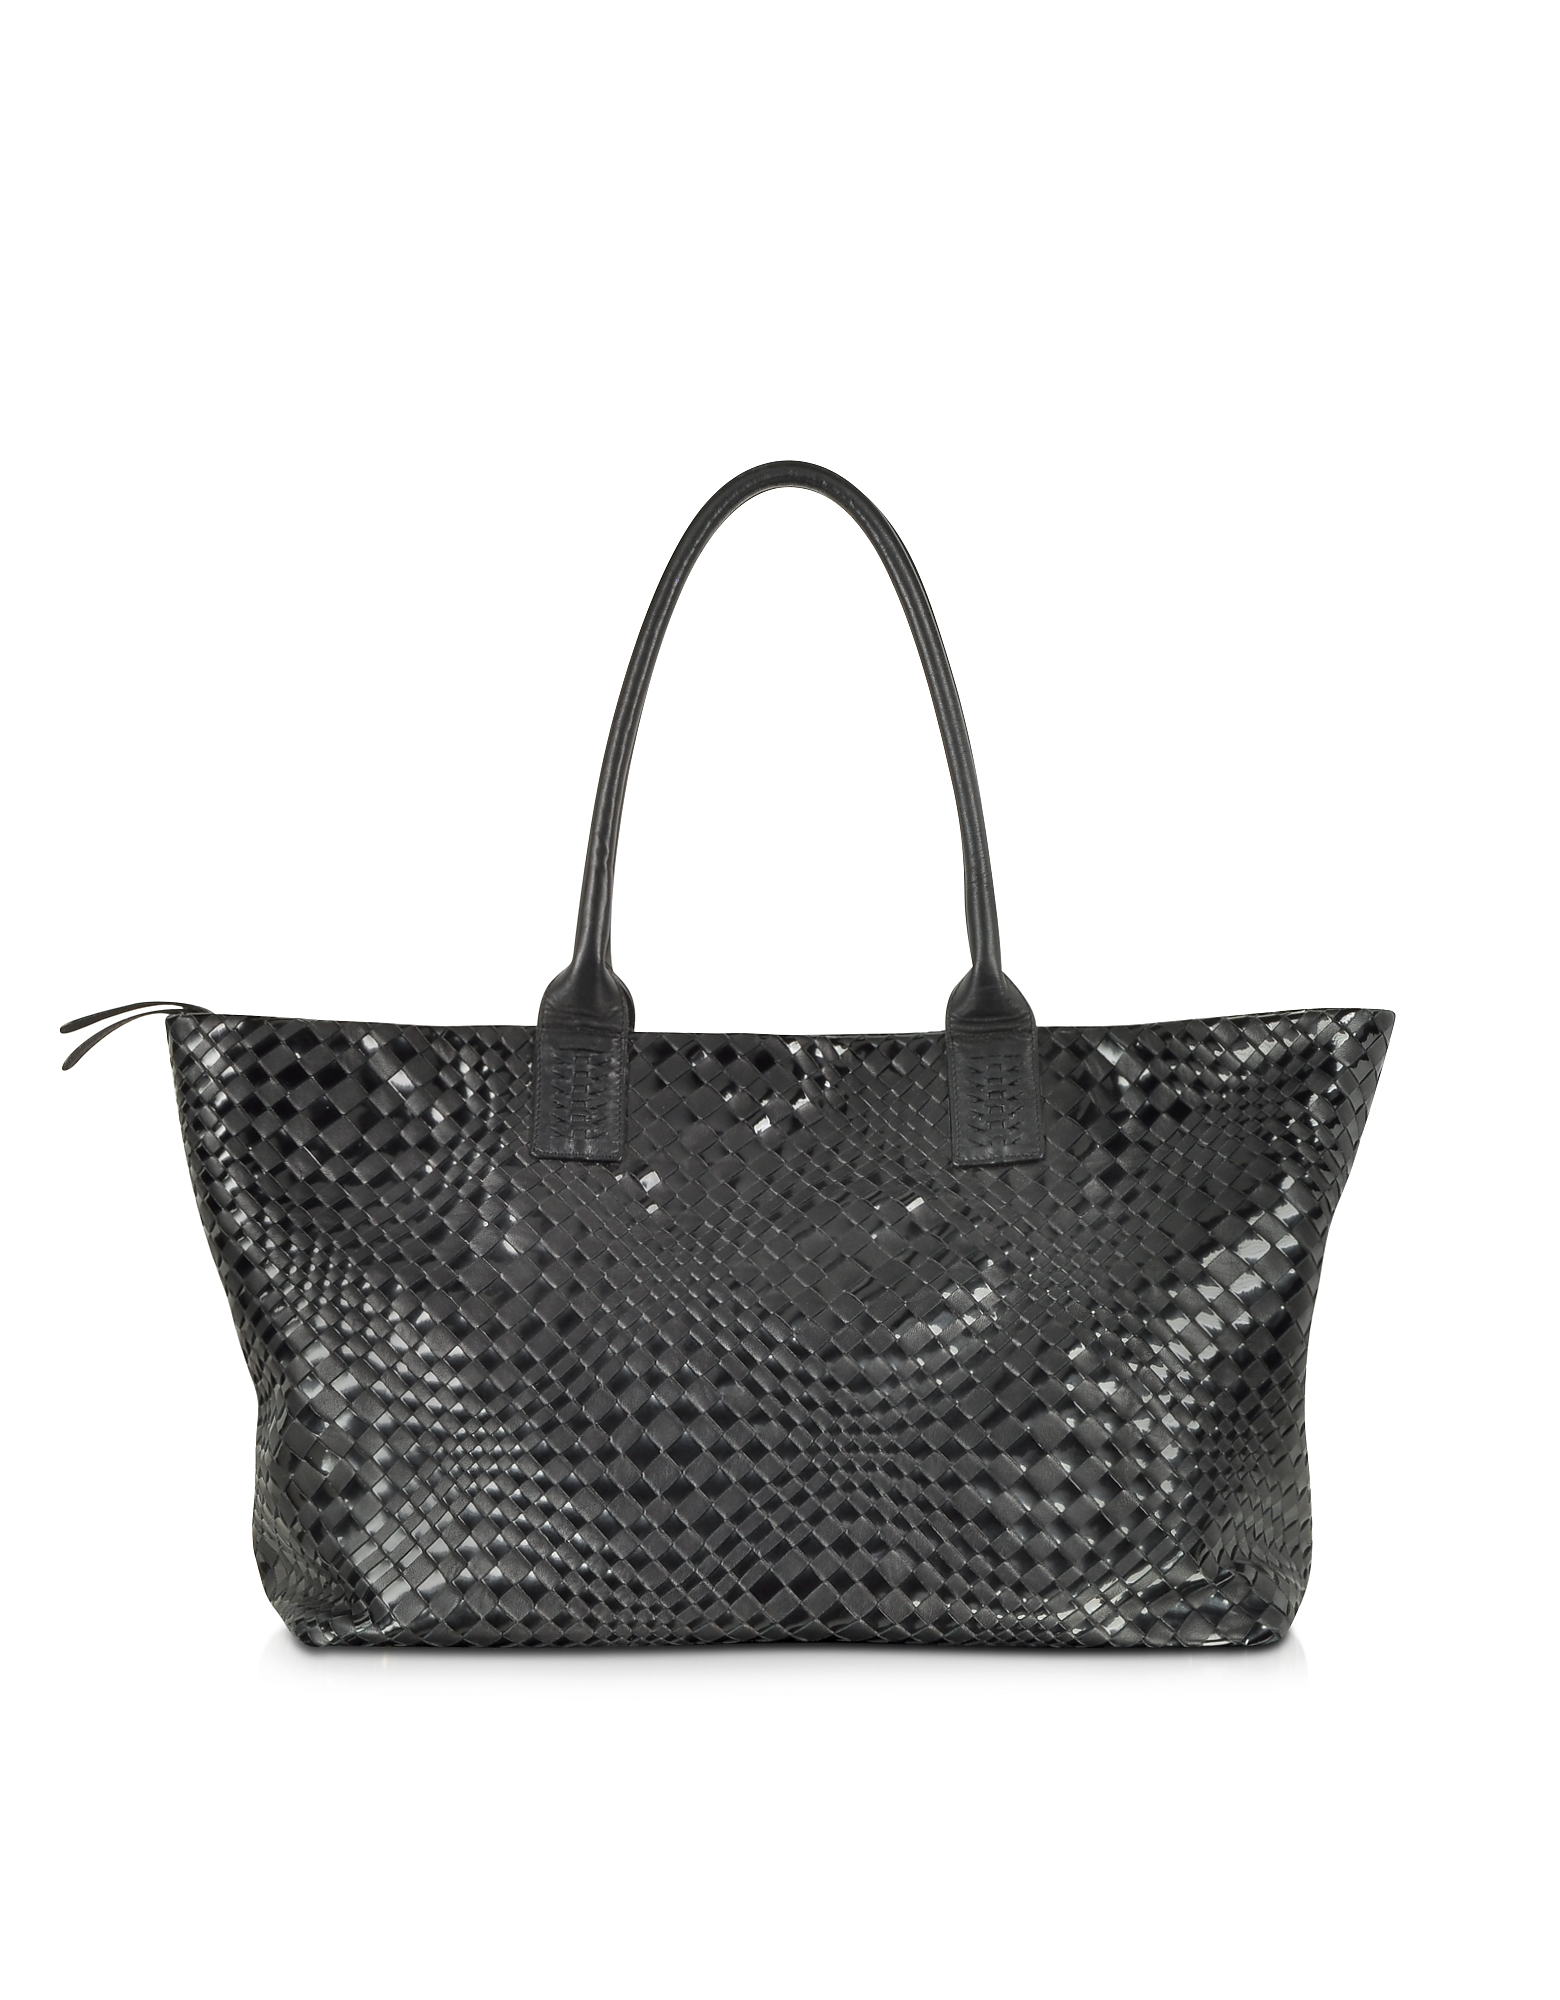 Forzieri Designer Handbags, Large Black Woven Leather Tote